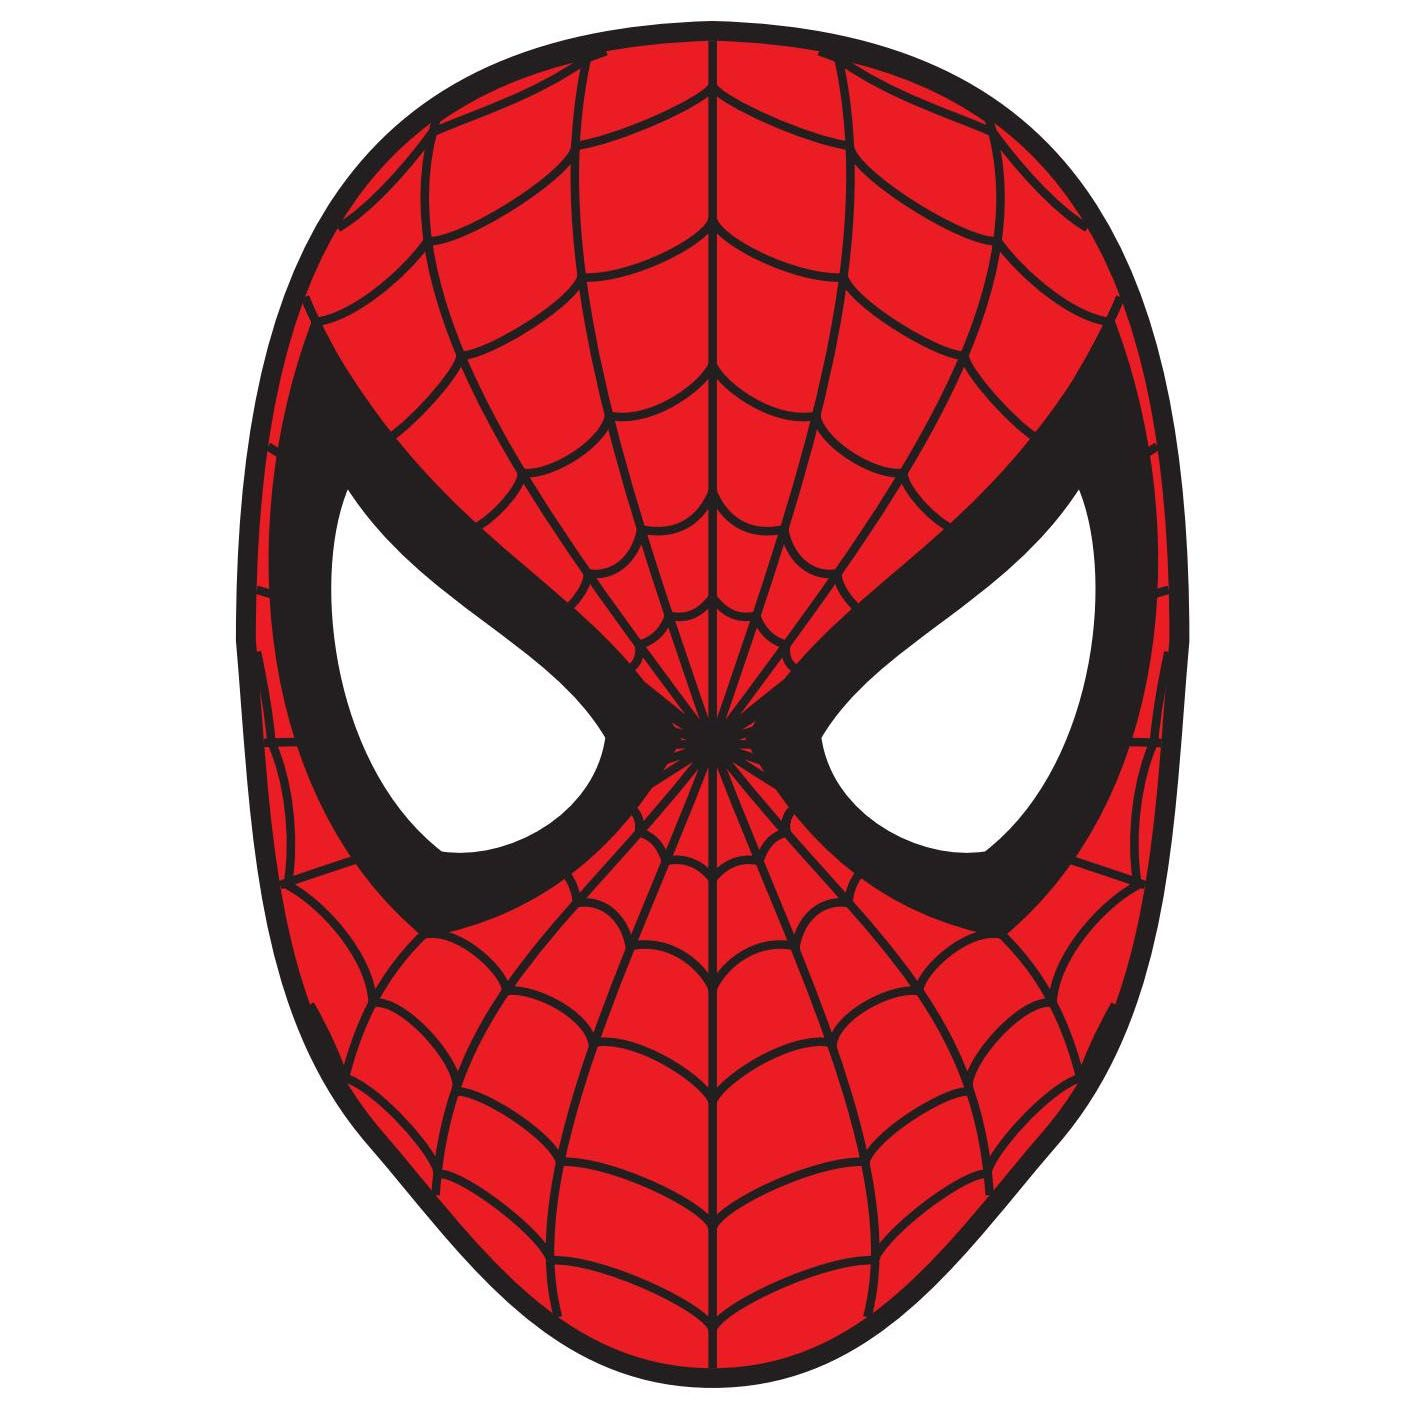 Color Spiderman Logo Spiderman face, Spiderman mask